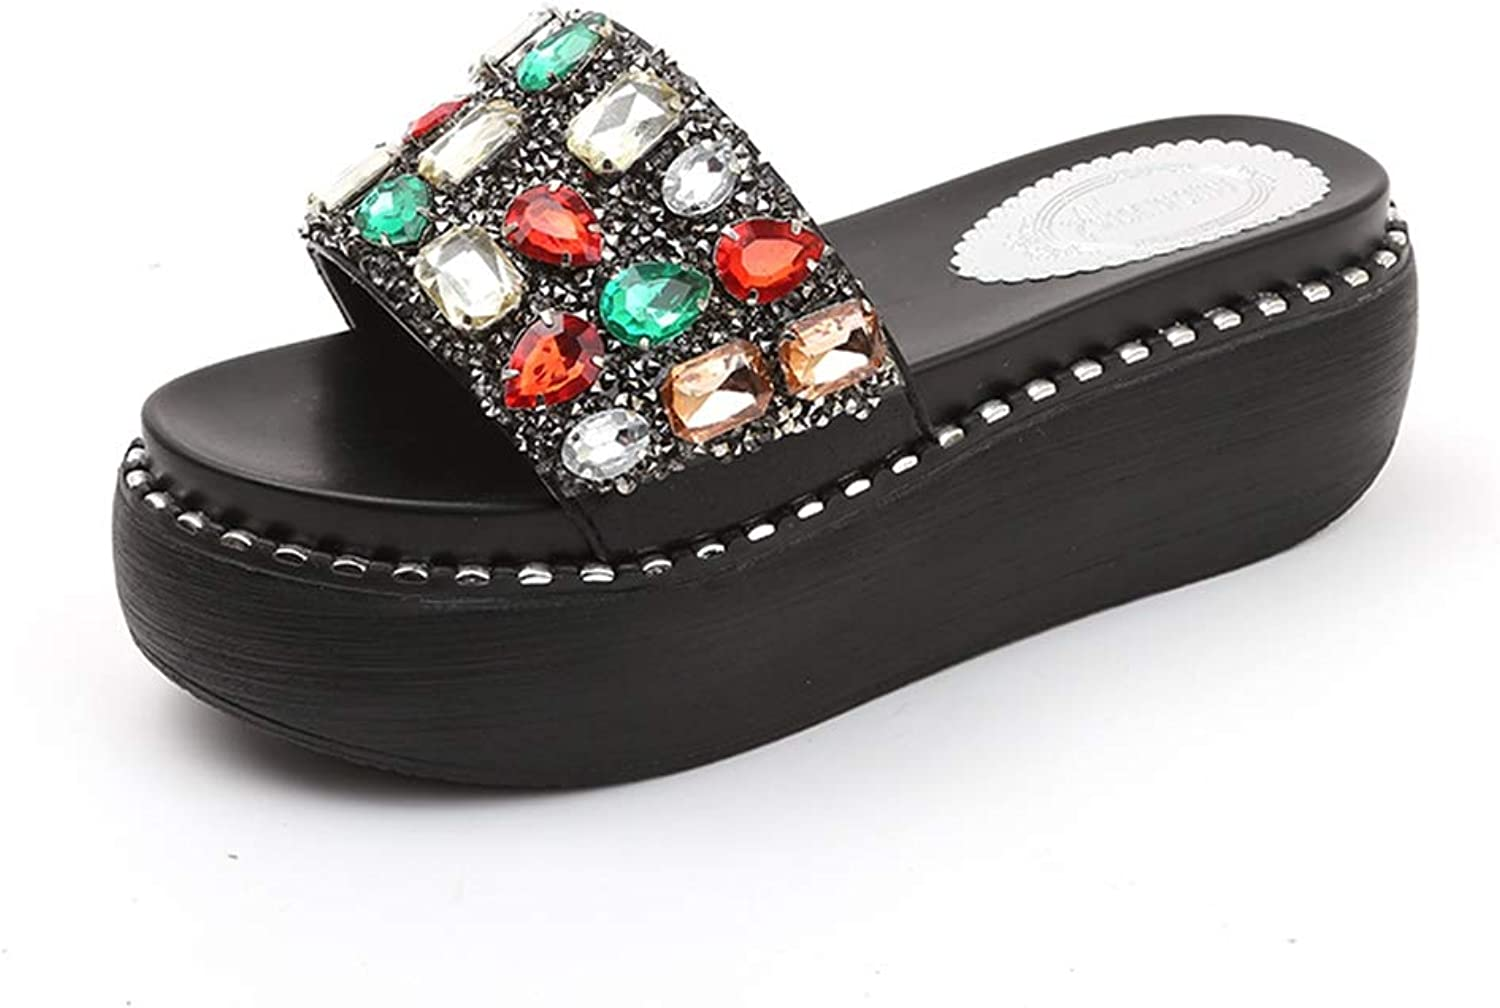 T-JULY Summer Slides Sandals for Women Beach shoes Crystal Rivets Wedges Slippers